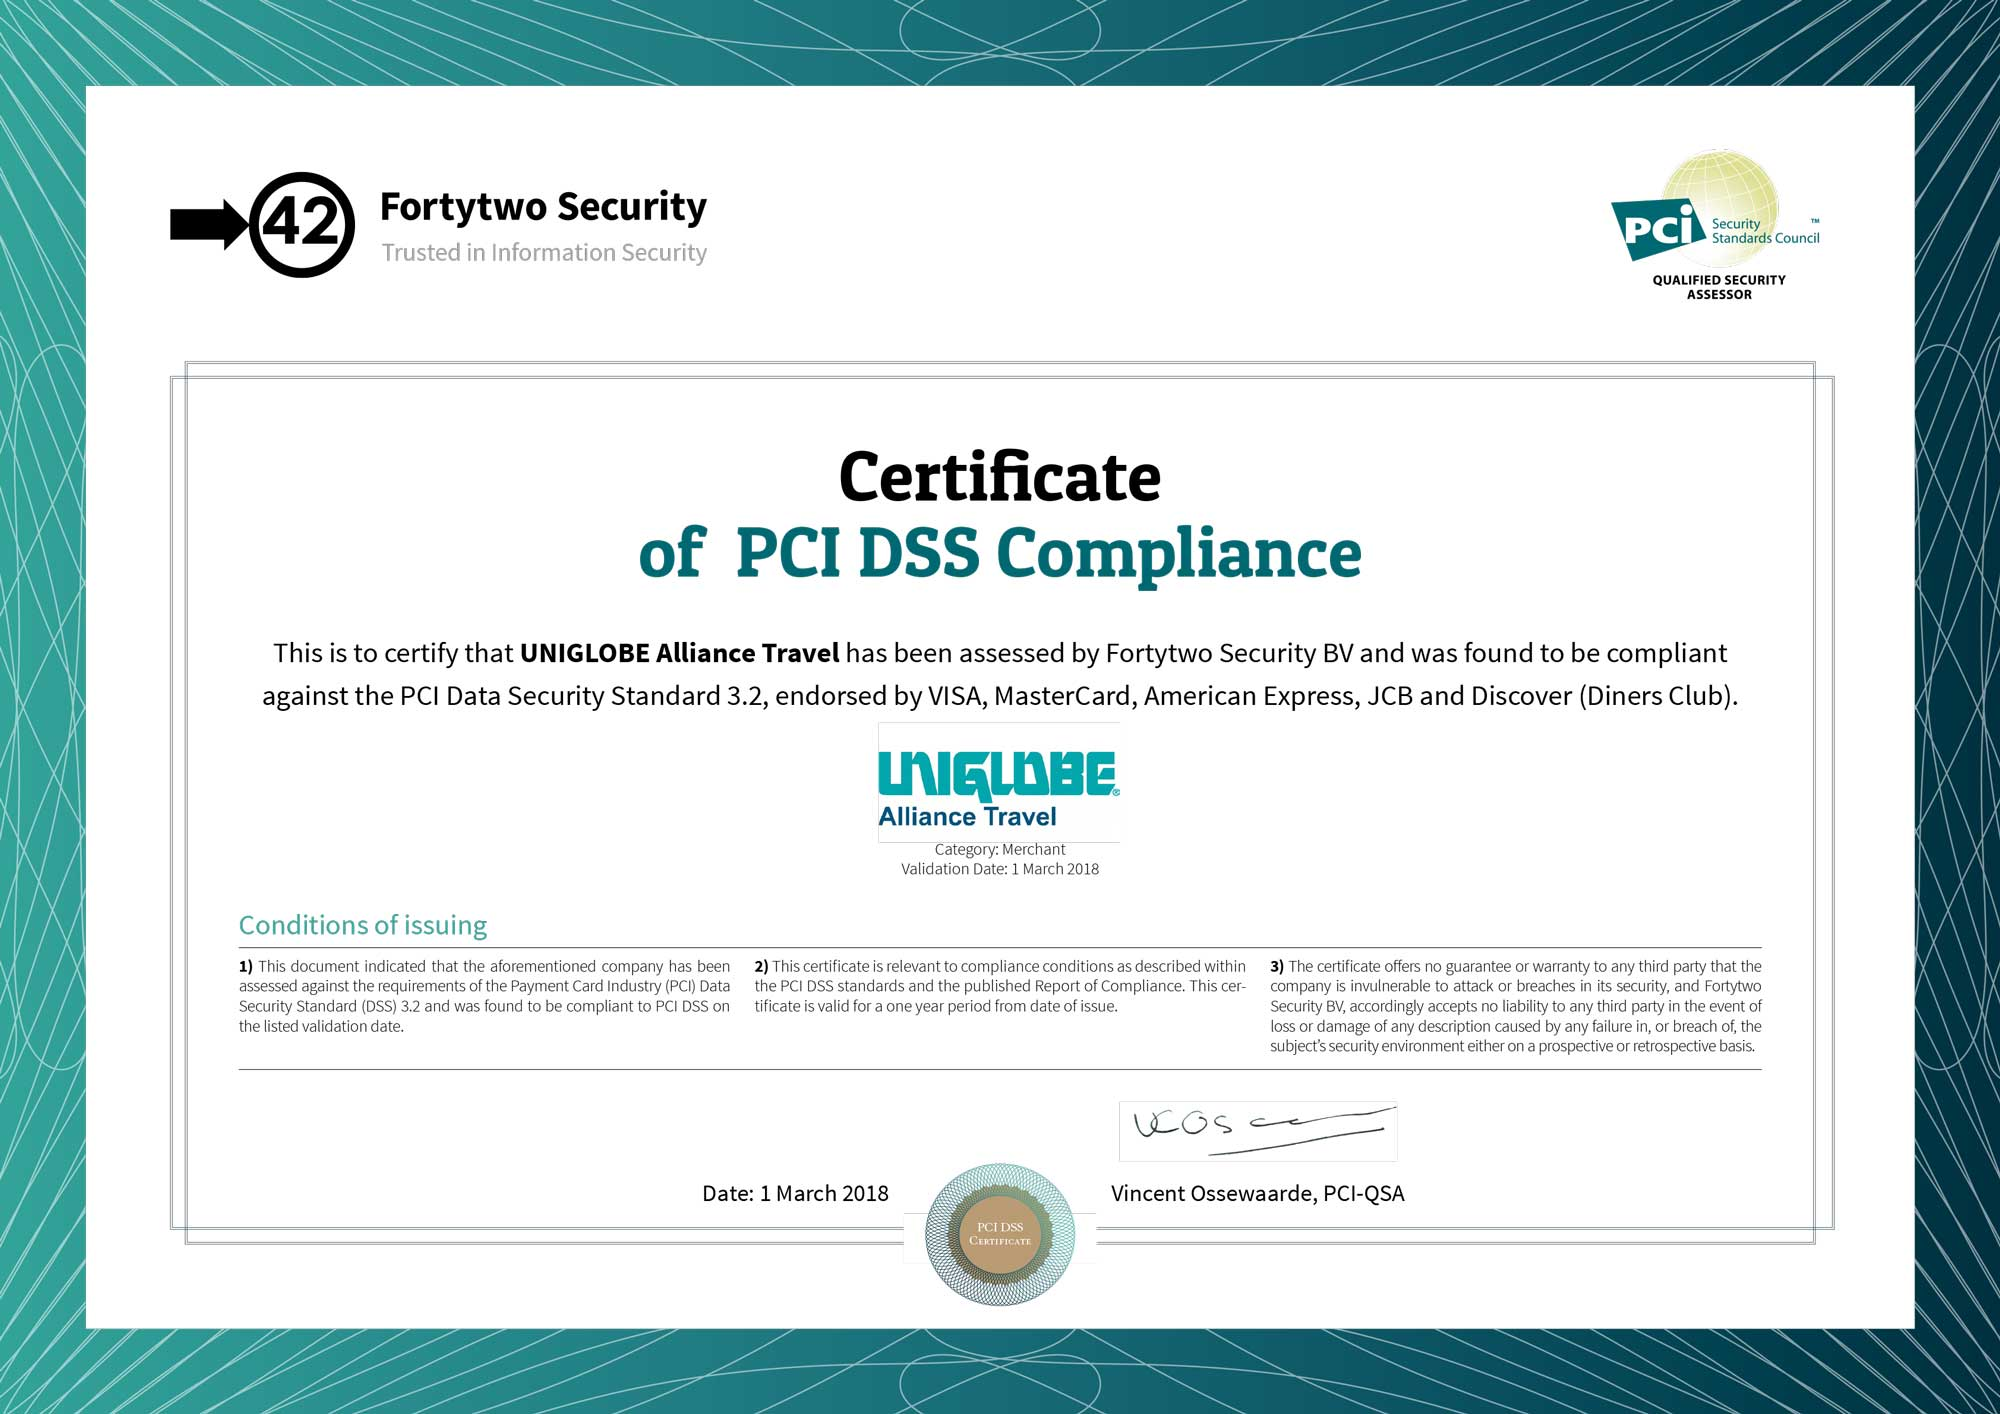 certificate-alliance-travel-pci-dss